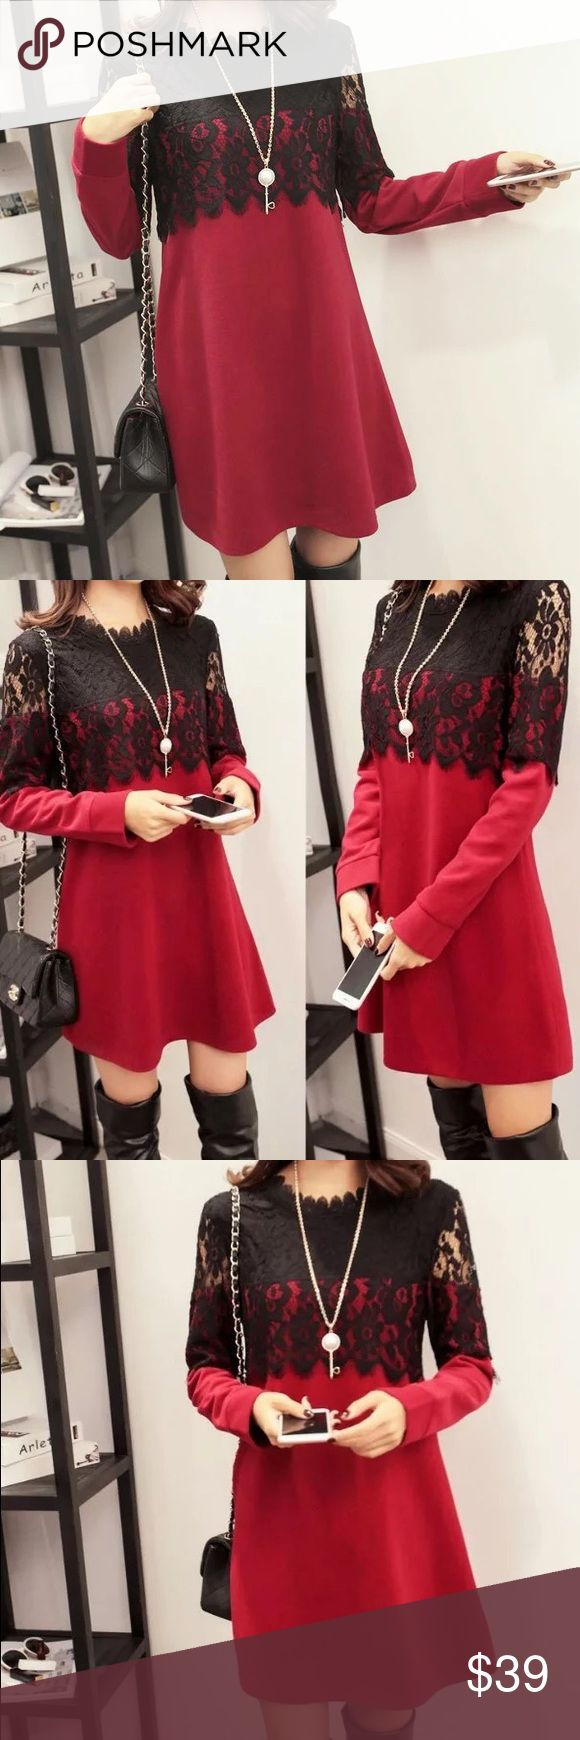 """Christmas Red Lace winter dress Fitted style, great match with long boots or leggings                                                               .  bust/shoulder/length US XS.   33""""/15.4""""/31"""" US S.     34.5""""/15.7/31.5"""" US M.    36""""/ 16.1""""/31.8"""" US L.     37.8""""/16.9""""/32.3"""" US XL    39.4""""/17.7""""/32.6"""" Dresses"""